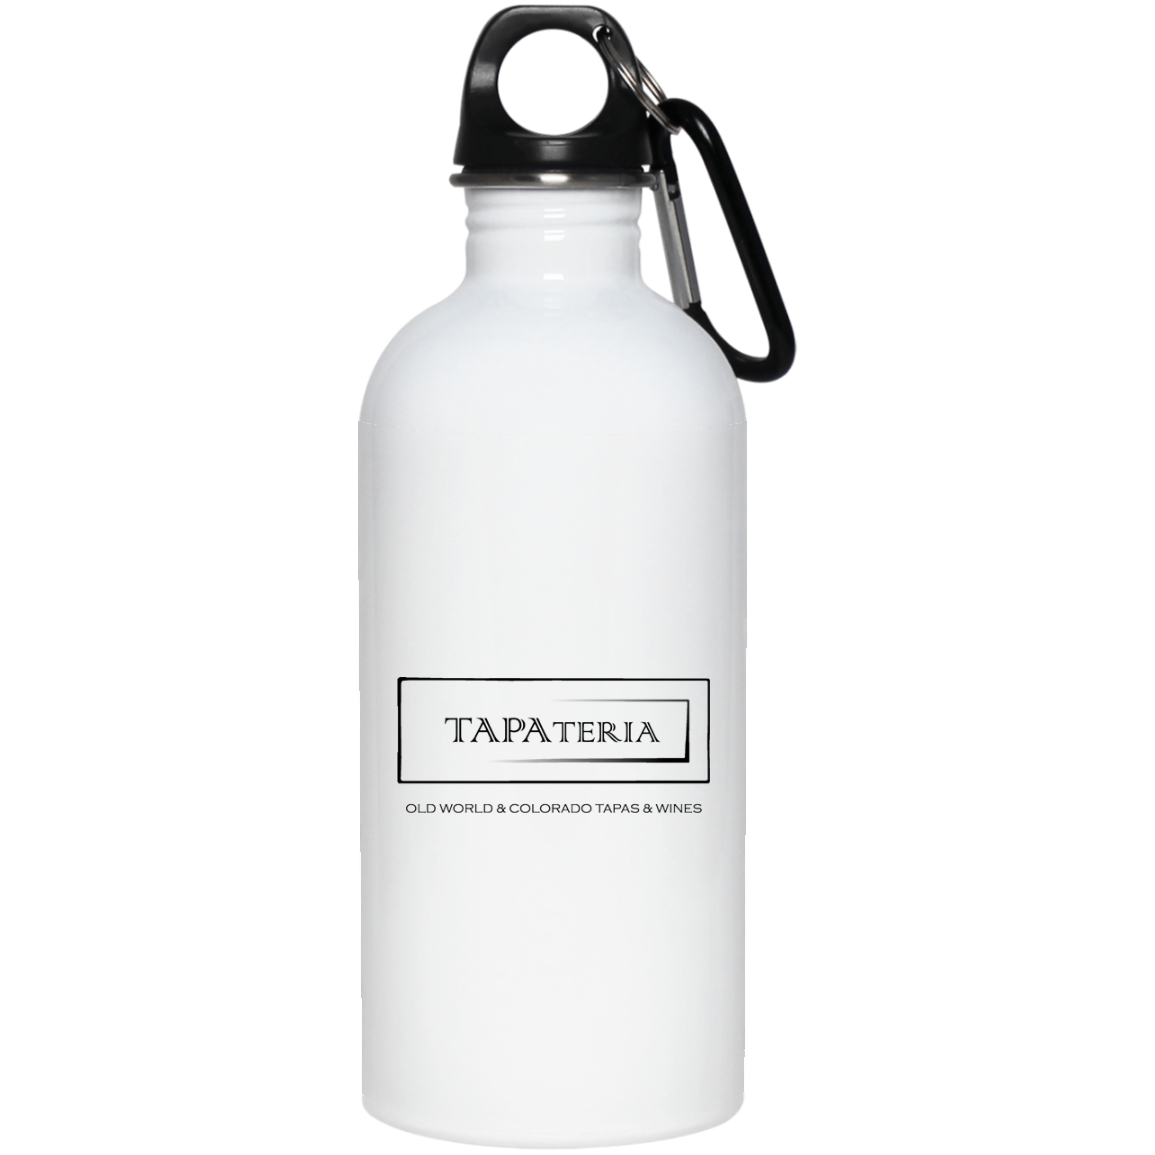 Tapa 20 oz. Stainless Steel Water Bottle